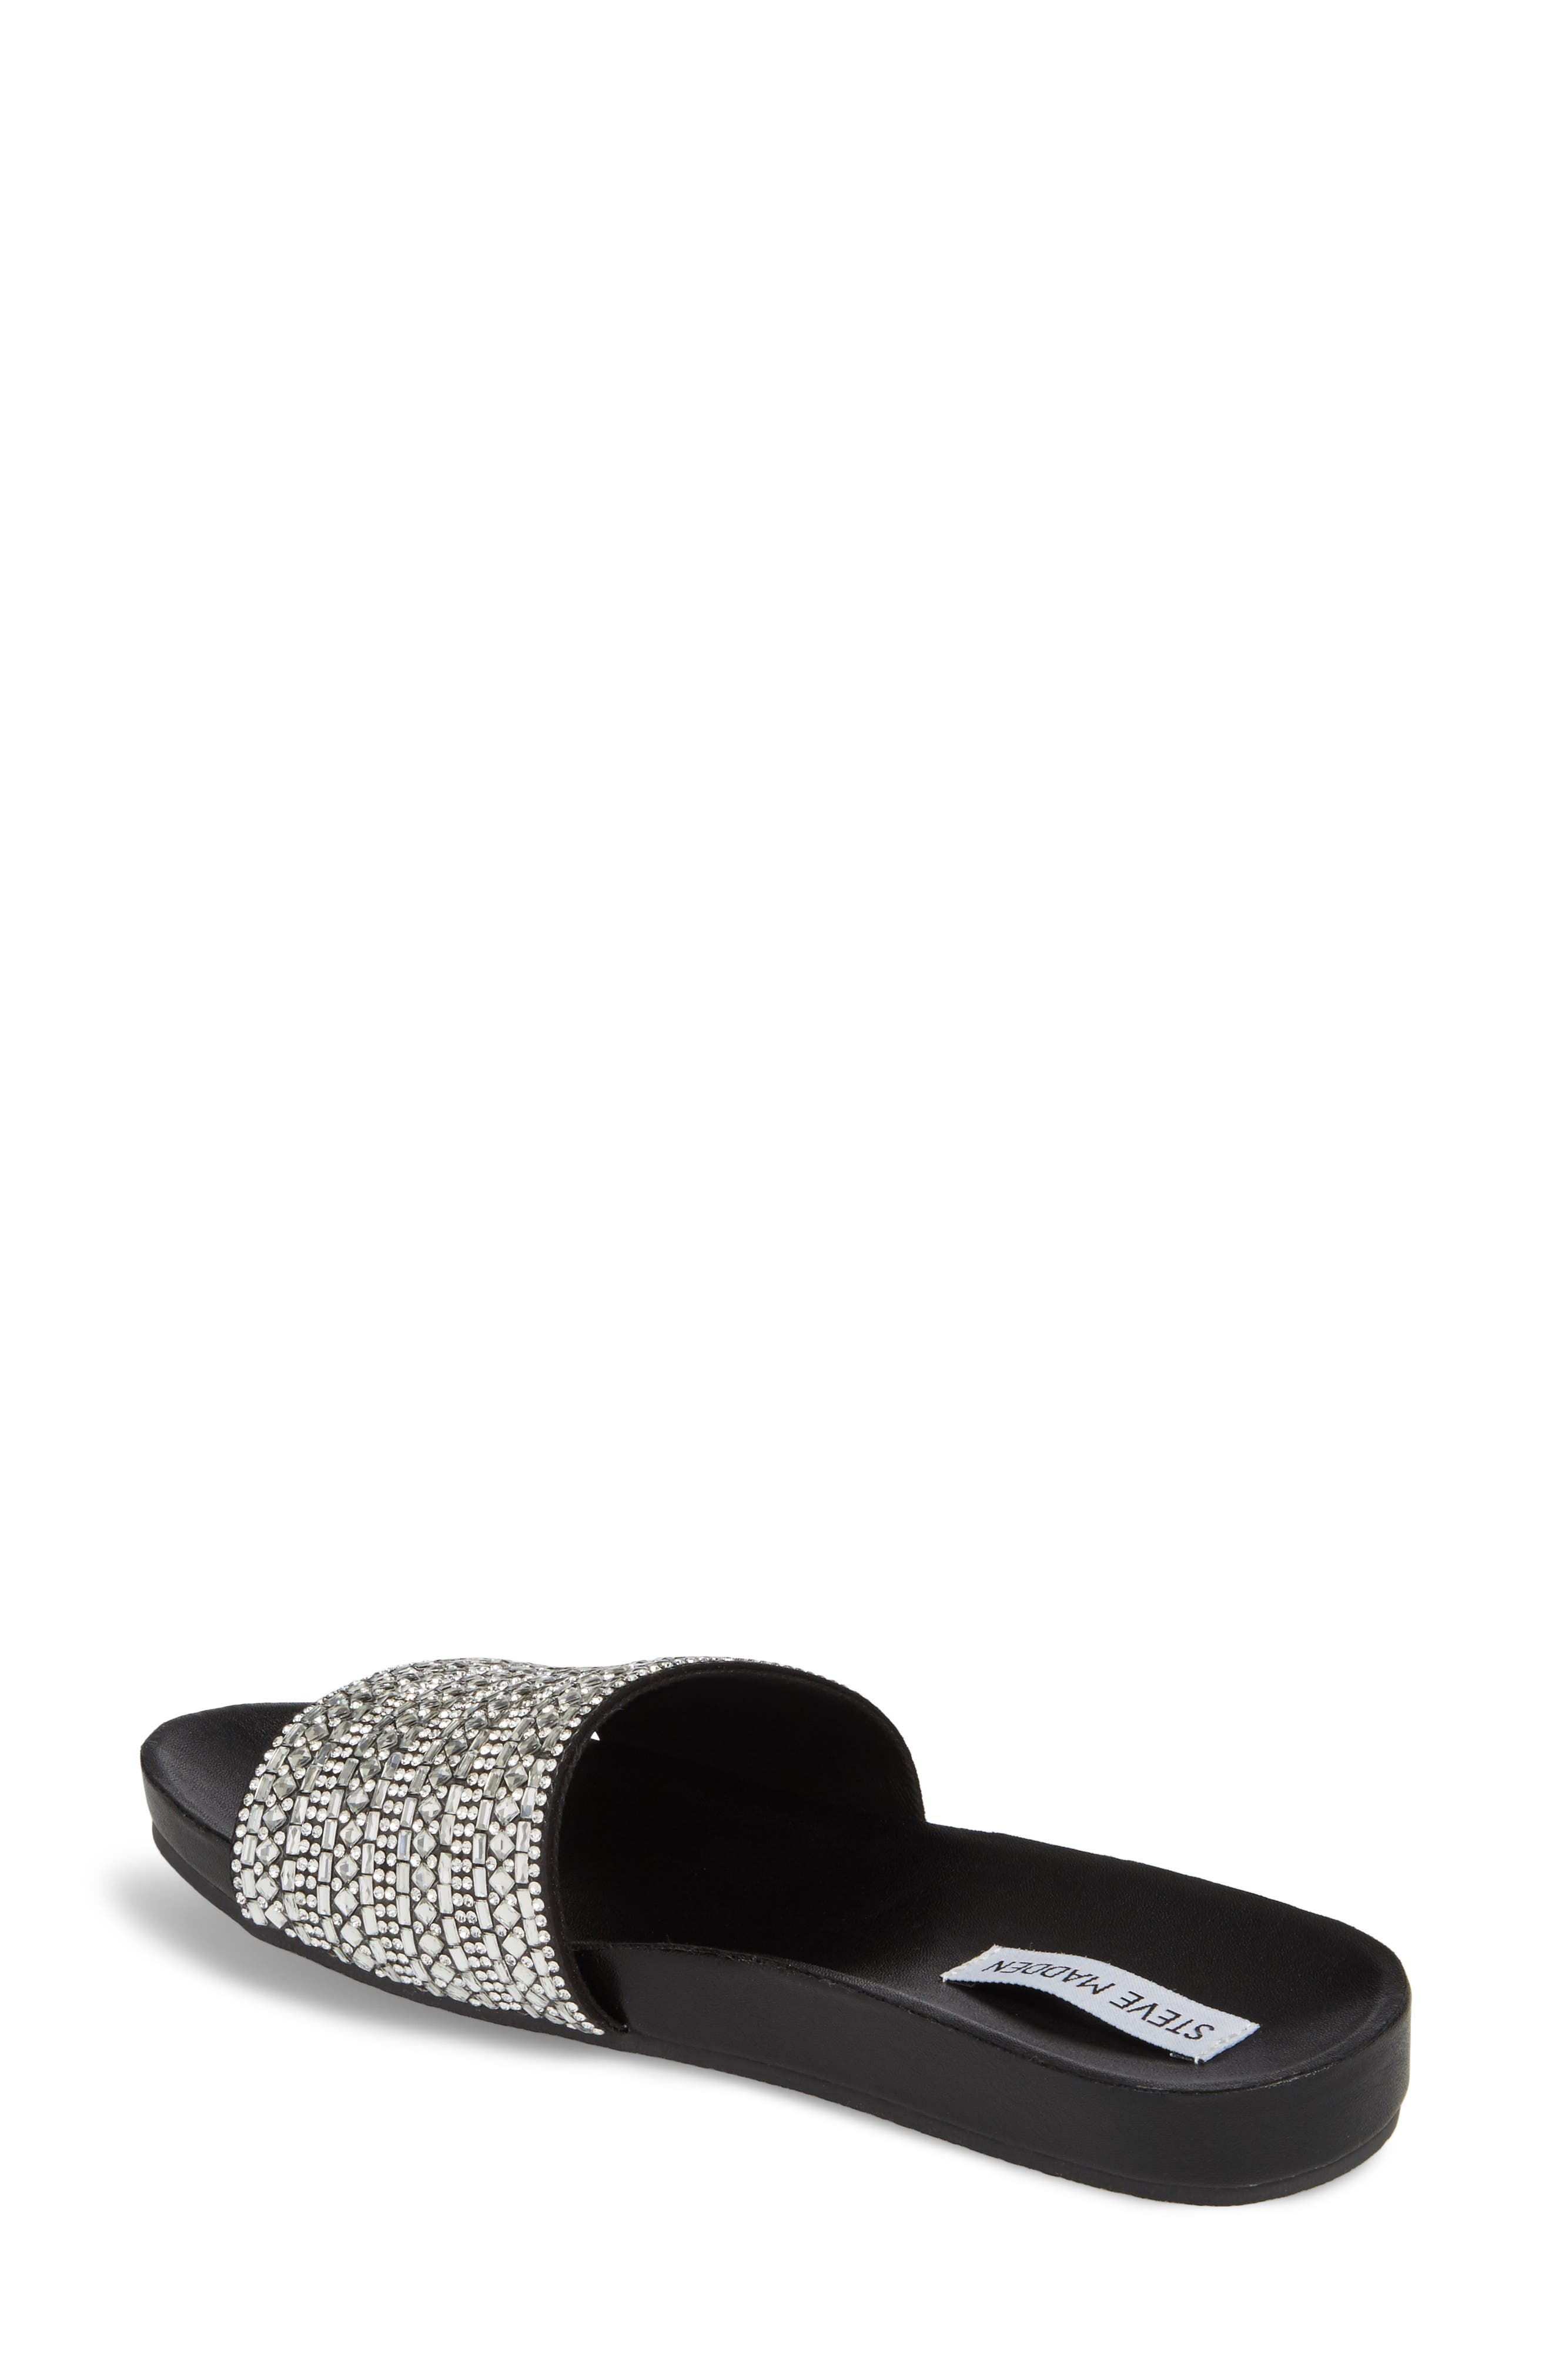 Alternate Image 2  - Steve Madden Dazzle Embellished Slide Sandal (Women)